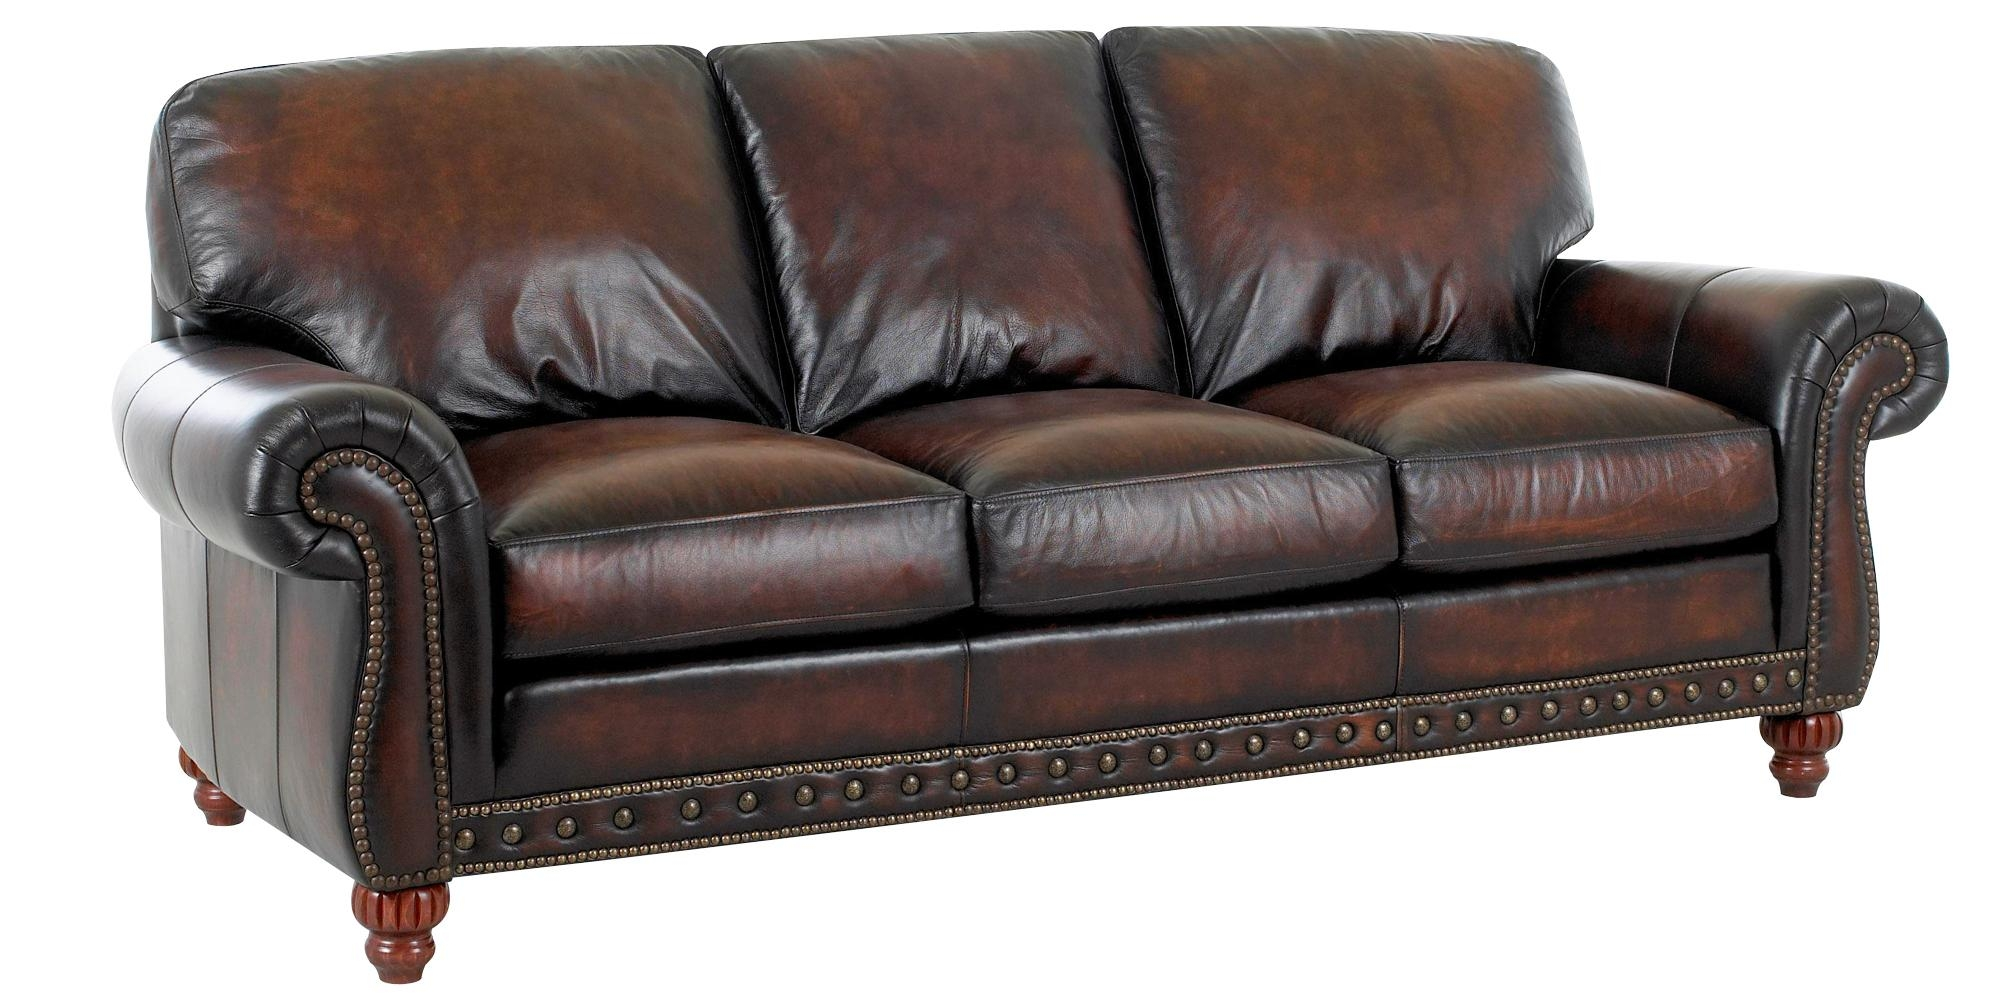 Traditional European Old World Leather Sofa Set | Club Furniture Throughout Old Fashioned Sofas (View 7 of 20)